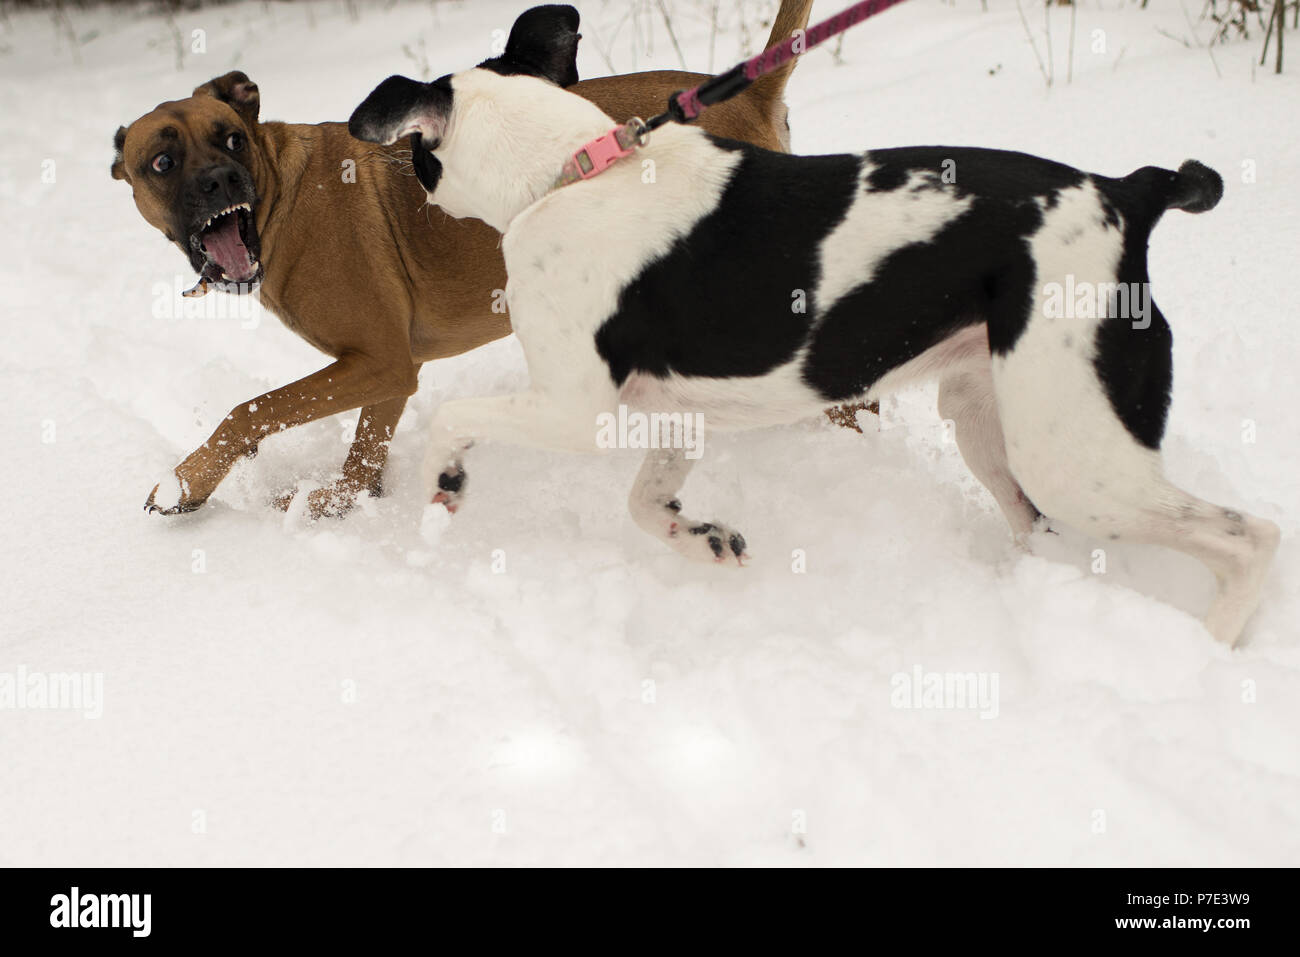 Dog snarling at dog on leash in snow - Stock Image